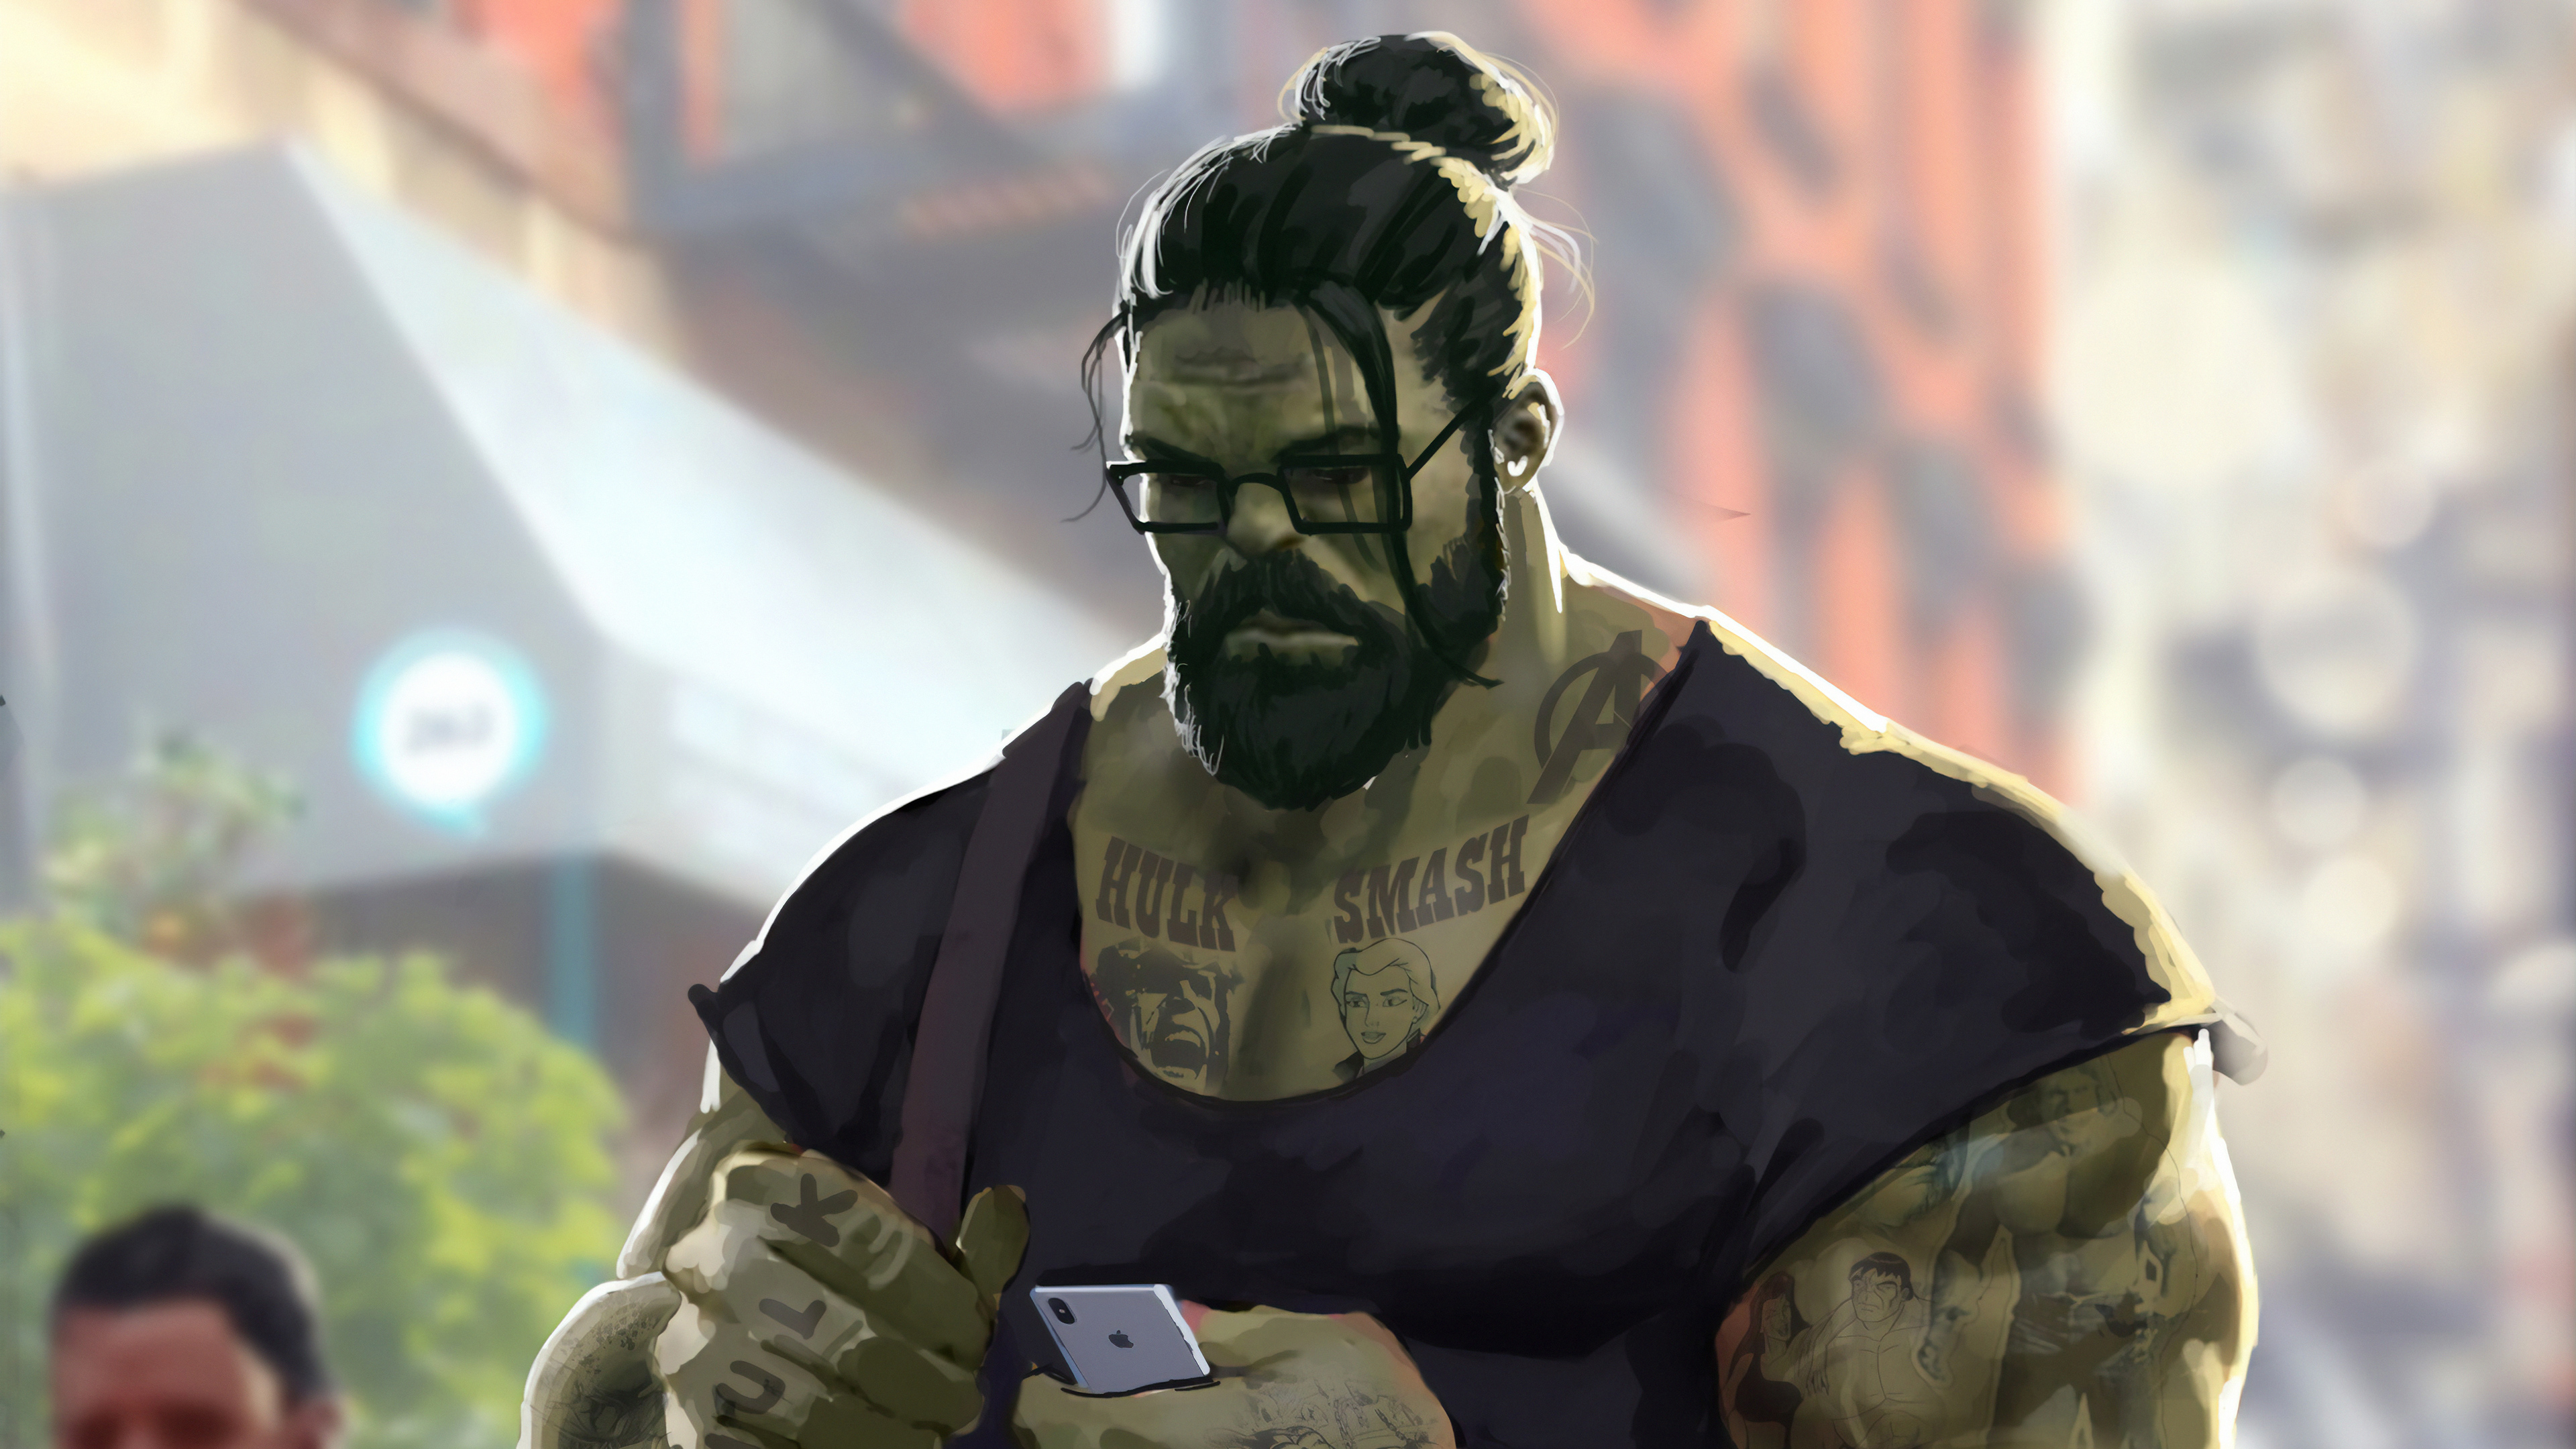 professor hulk man bun 1562106118 - Professor Hulk Man Bun - superheroes wallpapers, hulk wallpapers, hd-wallpapers, digital art wallpapers, artwork wallpapers, artstation wallpapers, 4k-wallpapers